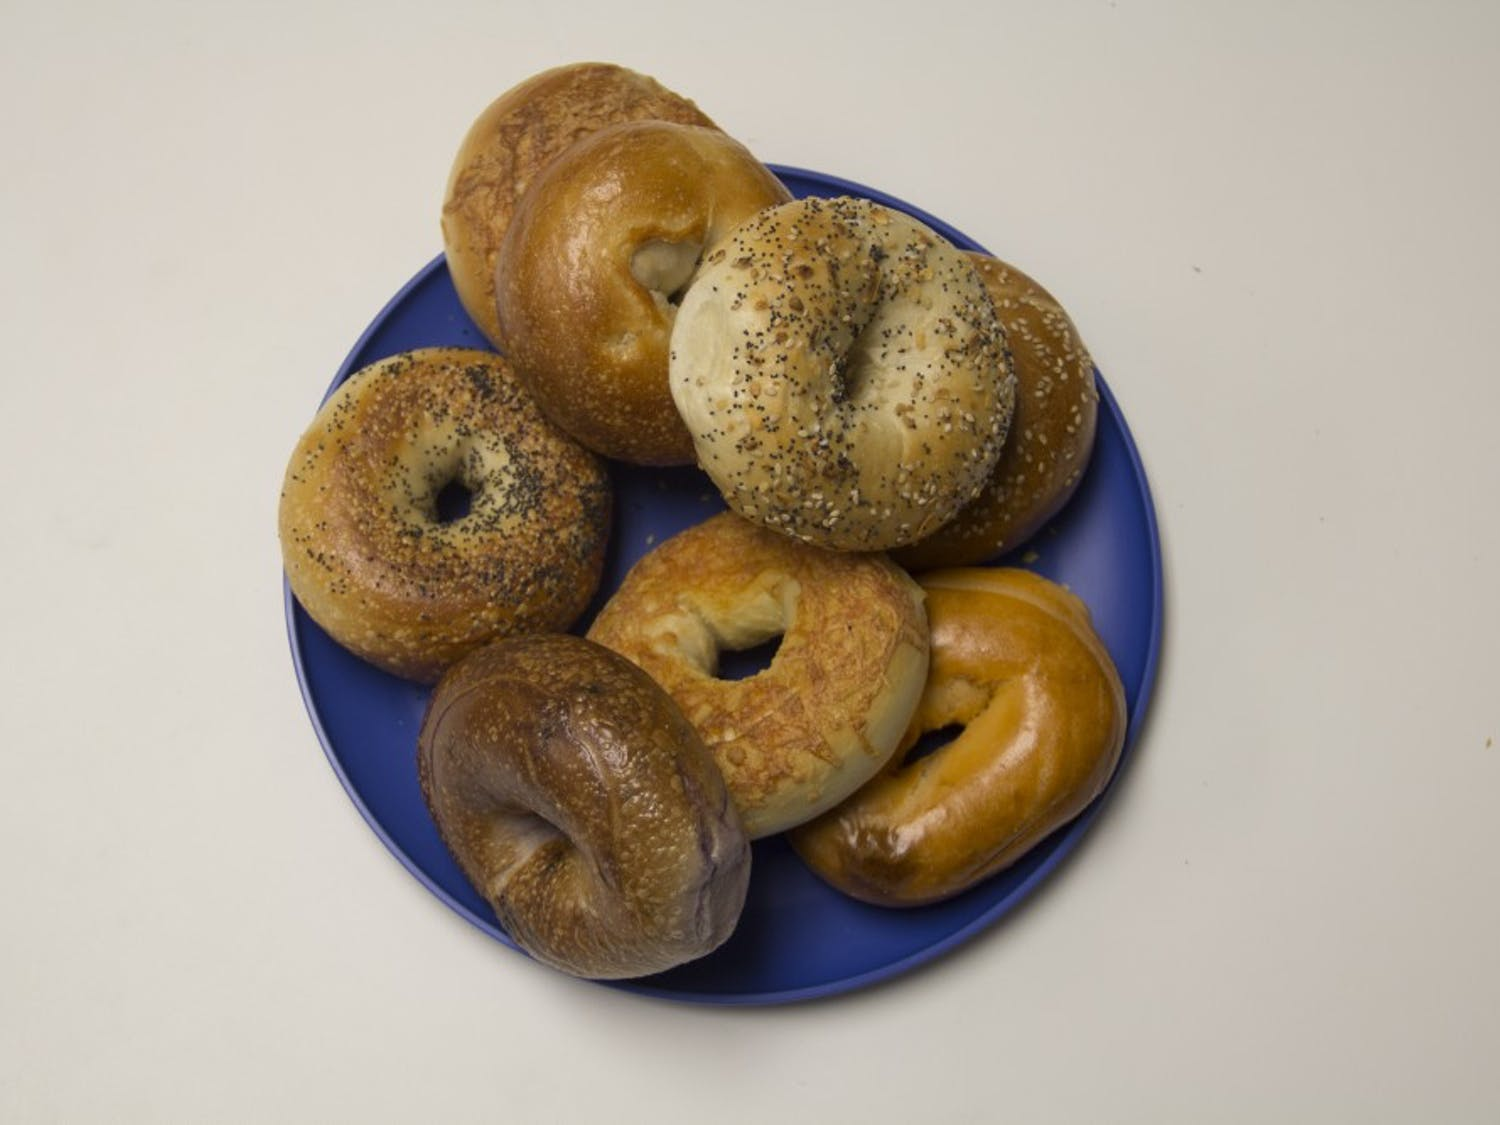 Bagel Jay's offers a number of options for students craving a bagel in Buffalo. Founder Jay Gershberg said that students who think they can't find New York-style bagels in Buffalo are greatly mistaken.